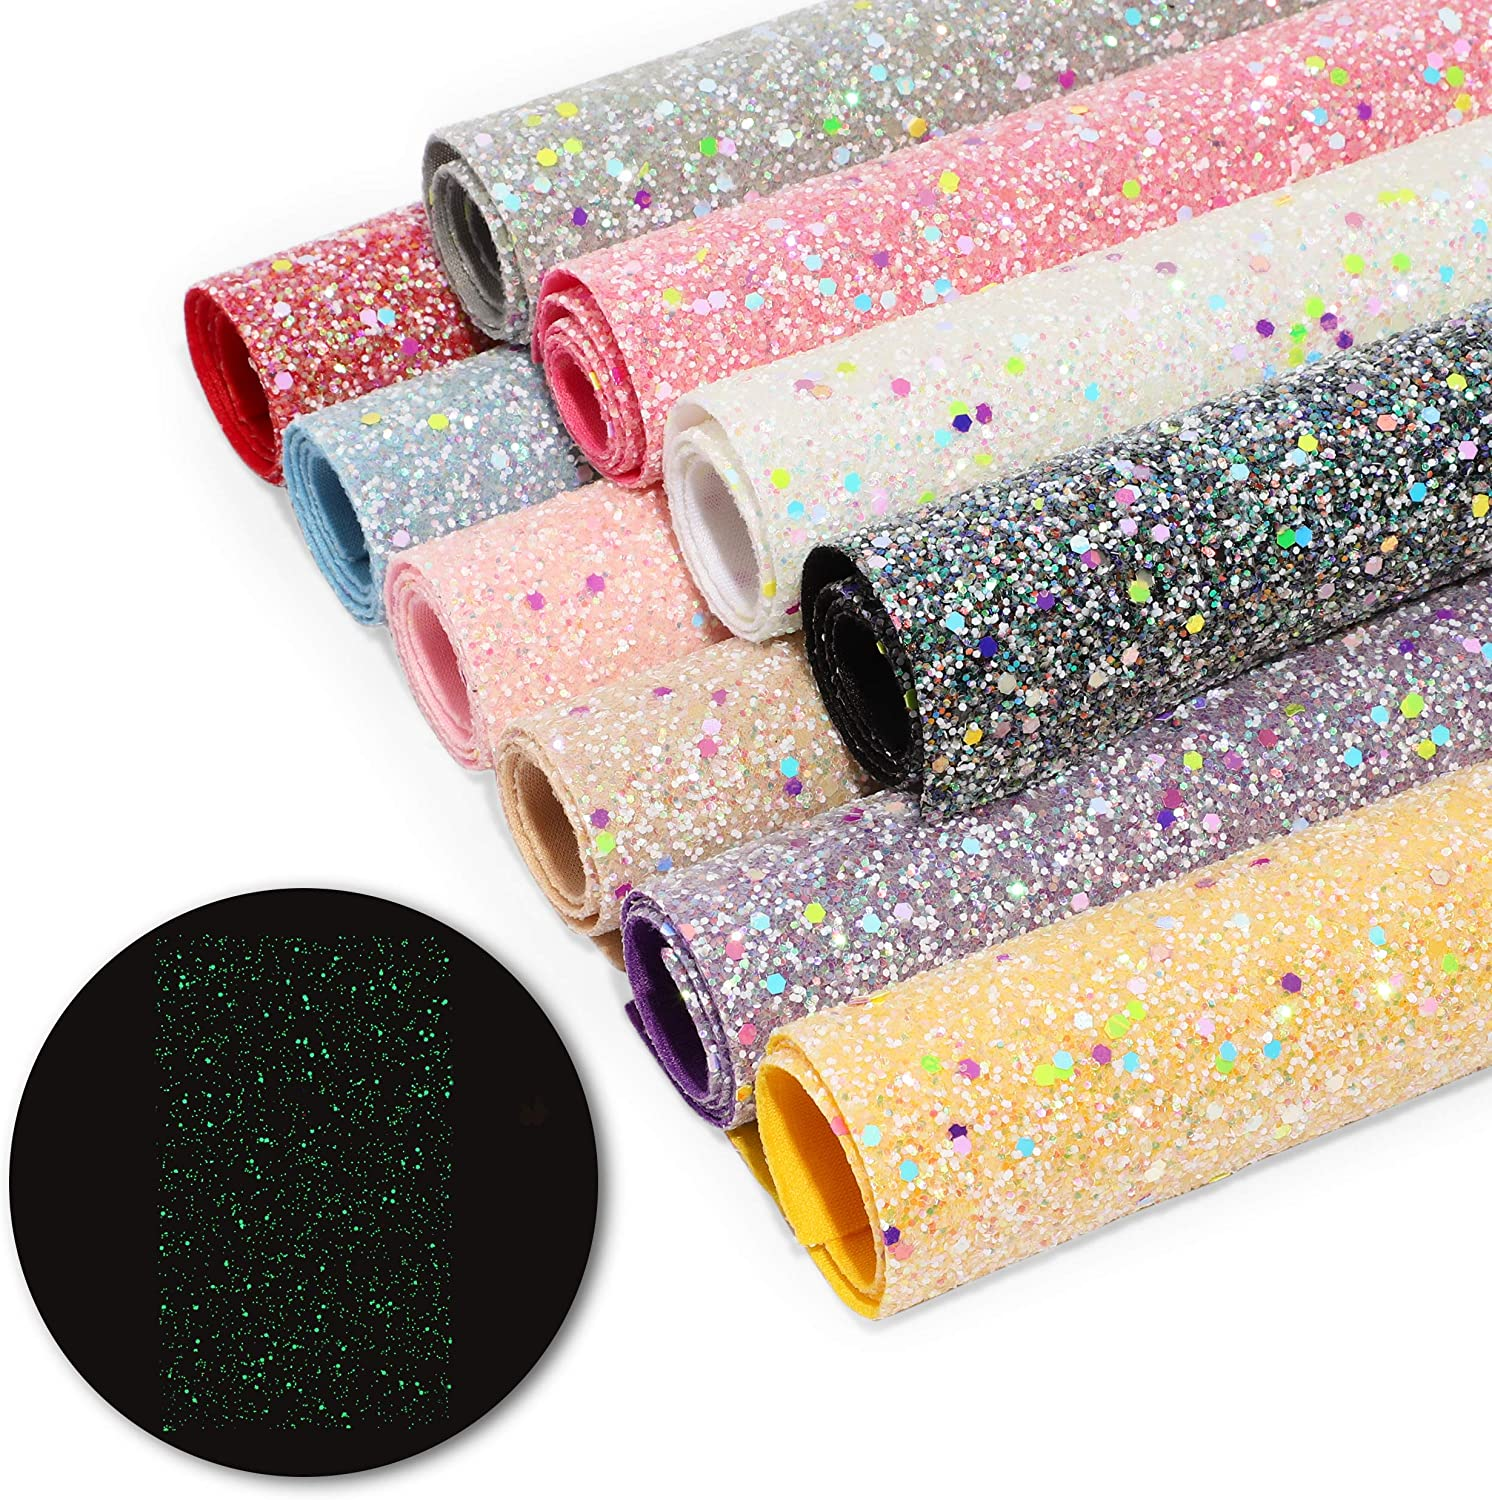 Faux Leather Sheets, Glow in The Dark, Chunky Glitter (7.8 x 13.4 in, 10 Pack)